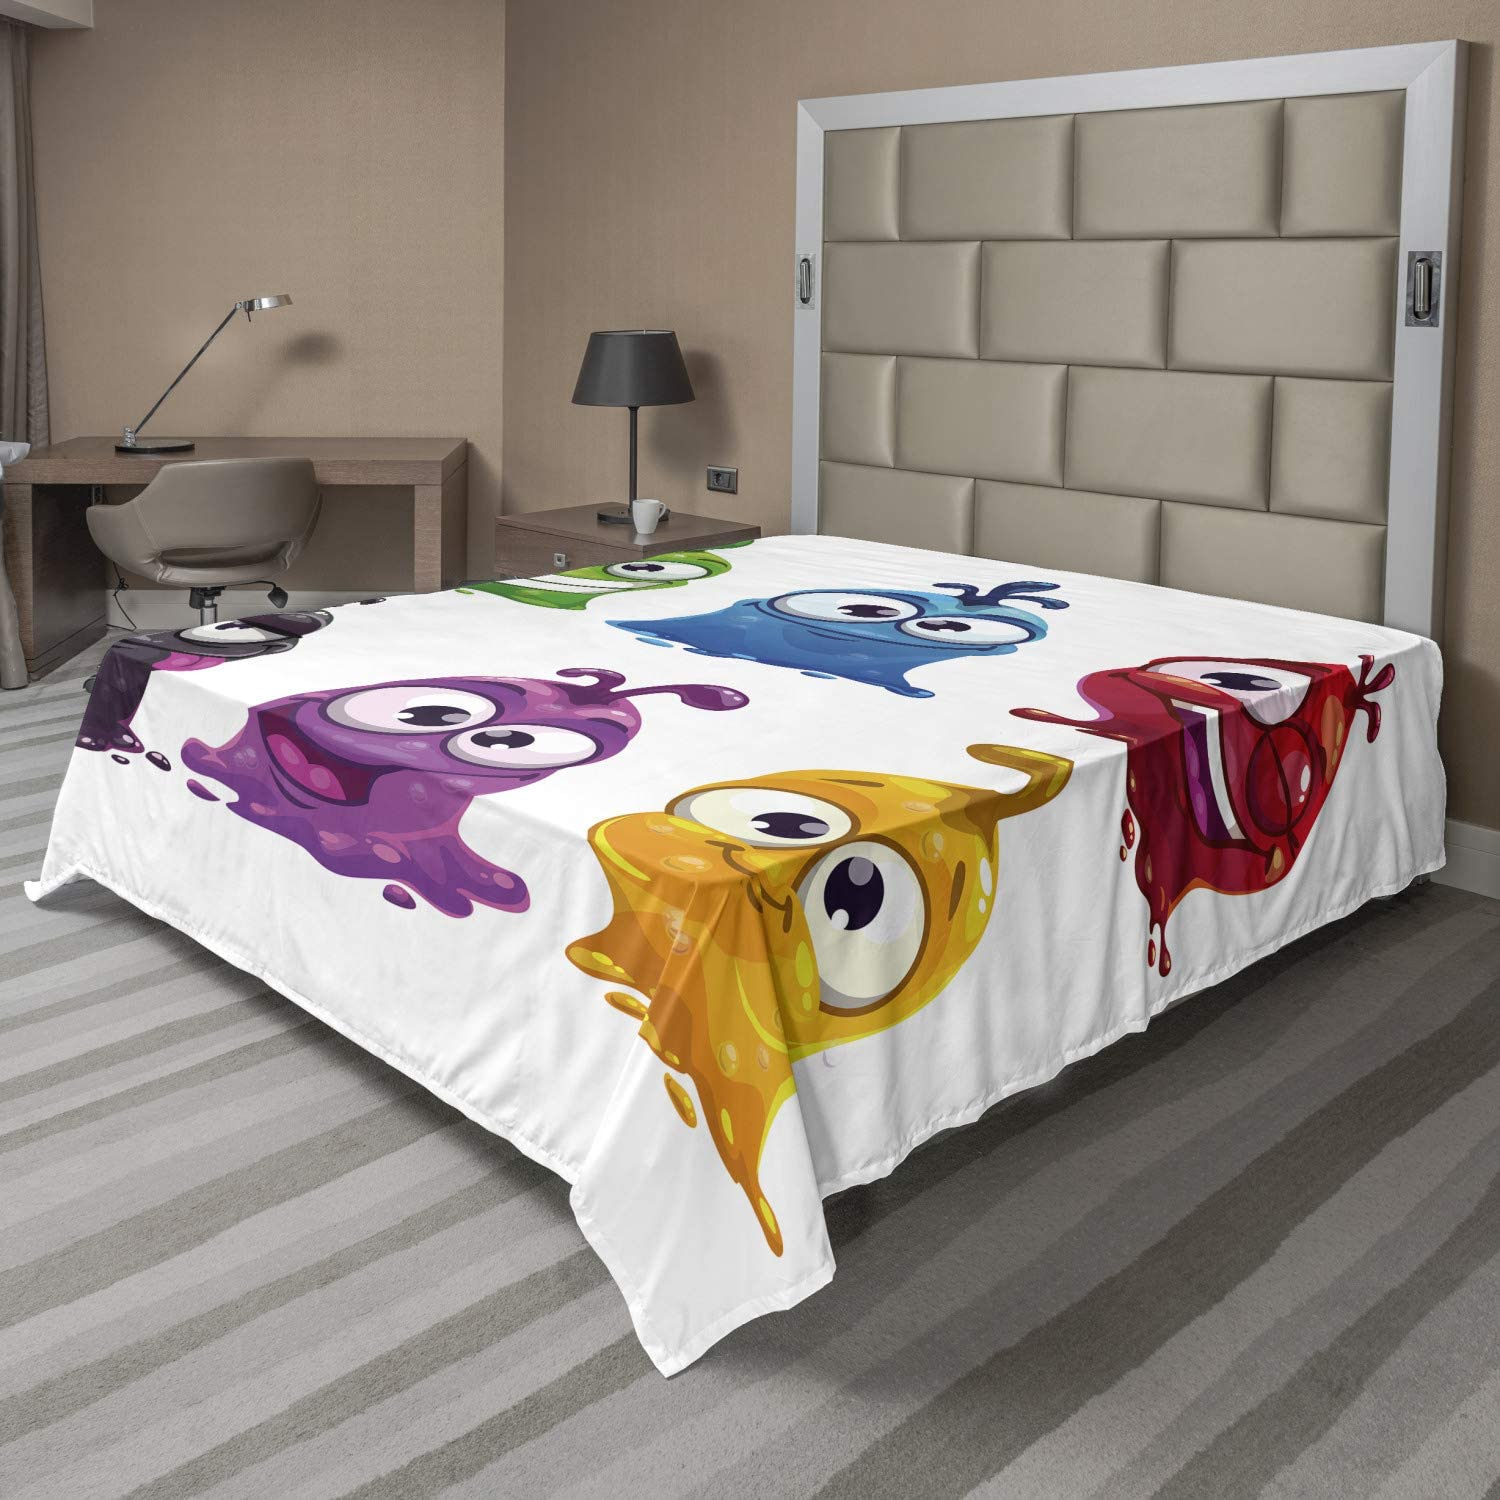 Lunarable Funny Flat Sheet Cartoon Liquid Character Creatures Limited Special Price Super intense SALE B